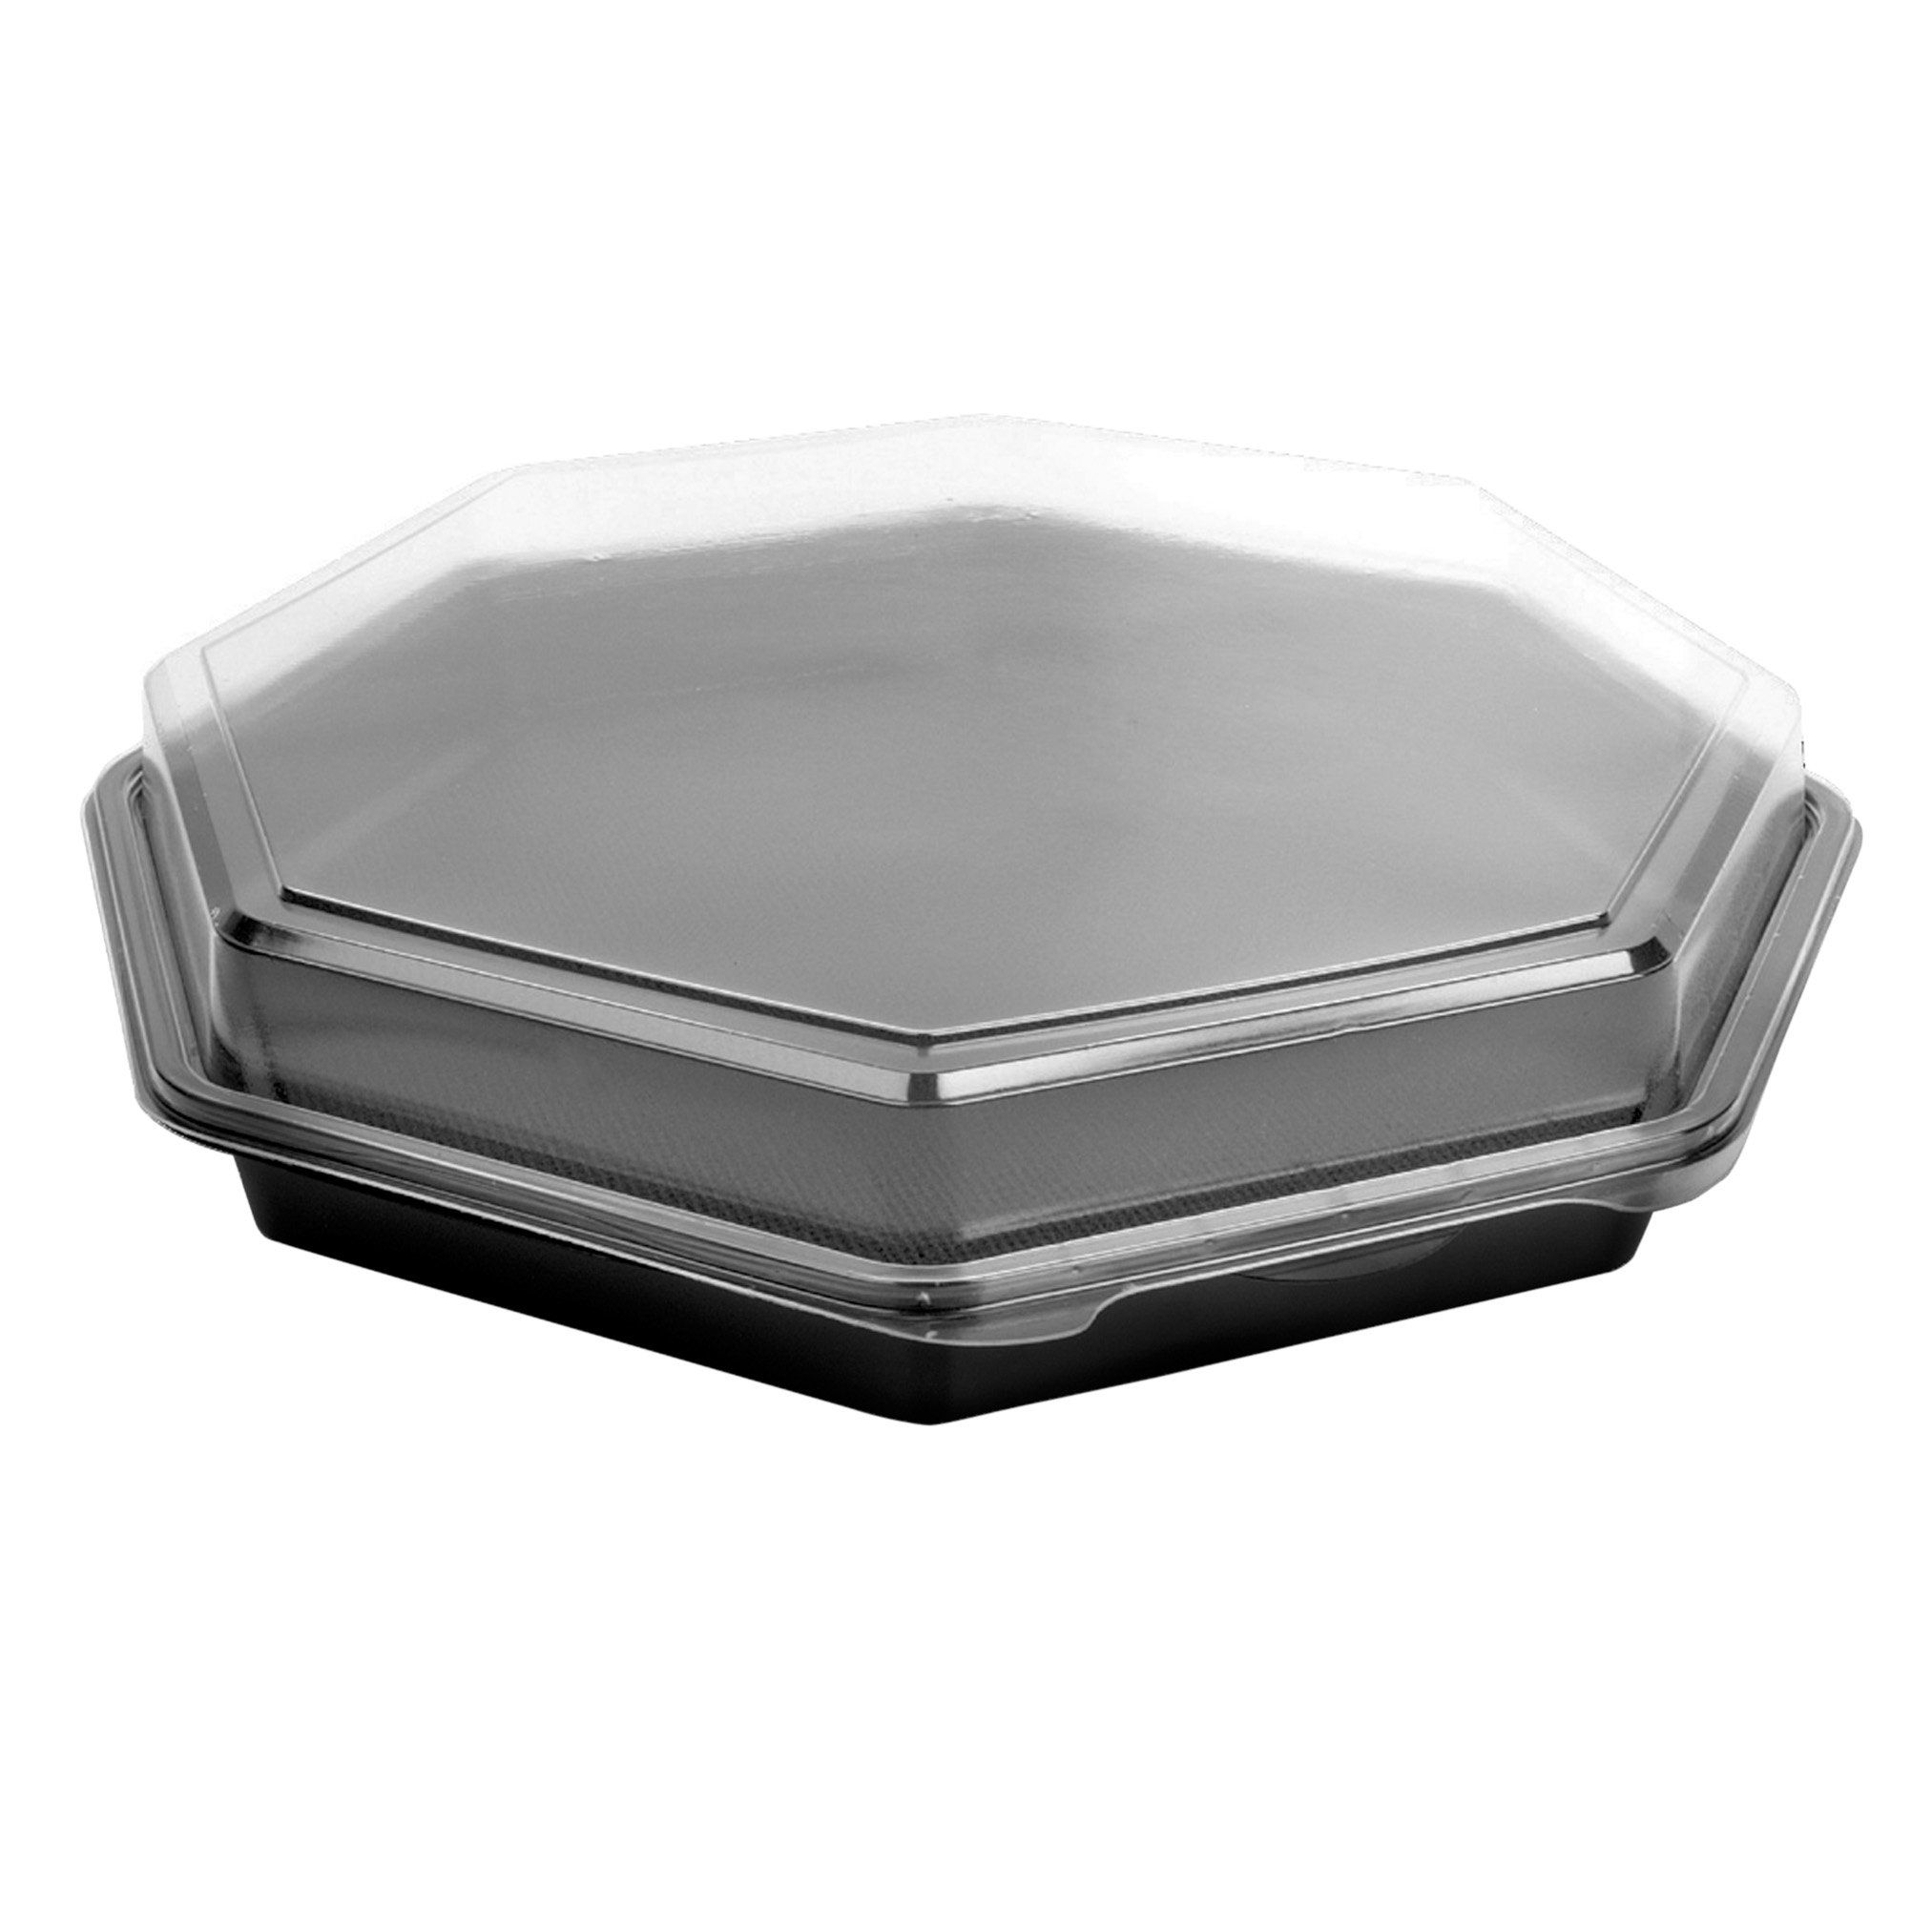 SOLO 863611-PS94 Creative Carryouts OctaView Polystyrene Hinged Cold Food Container, Octagonal, 12.5'' x 12'' x 3.2'', Black/Clear (Case of 100)